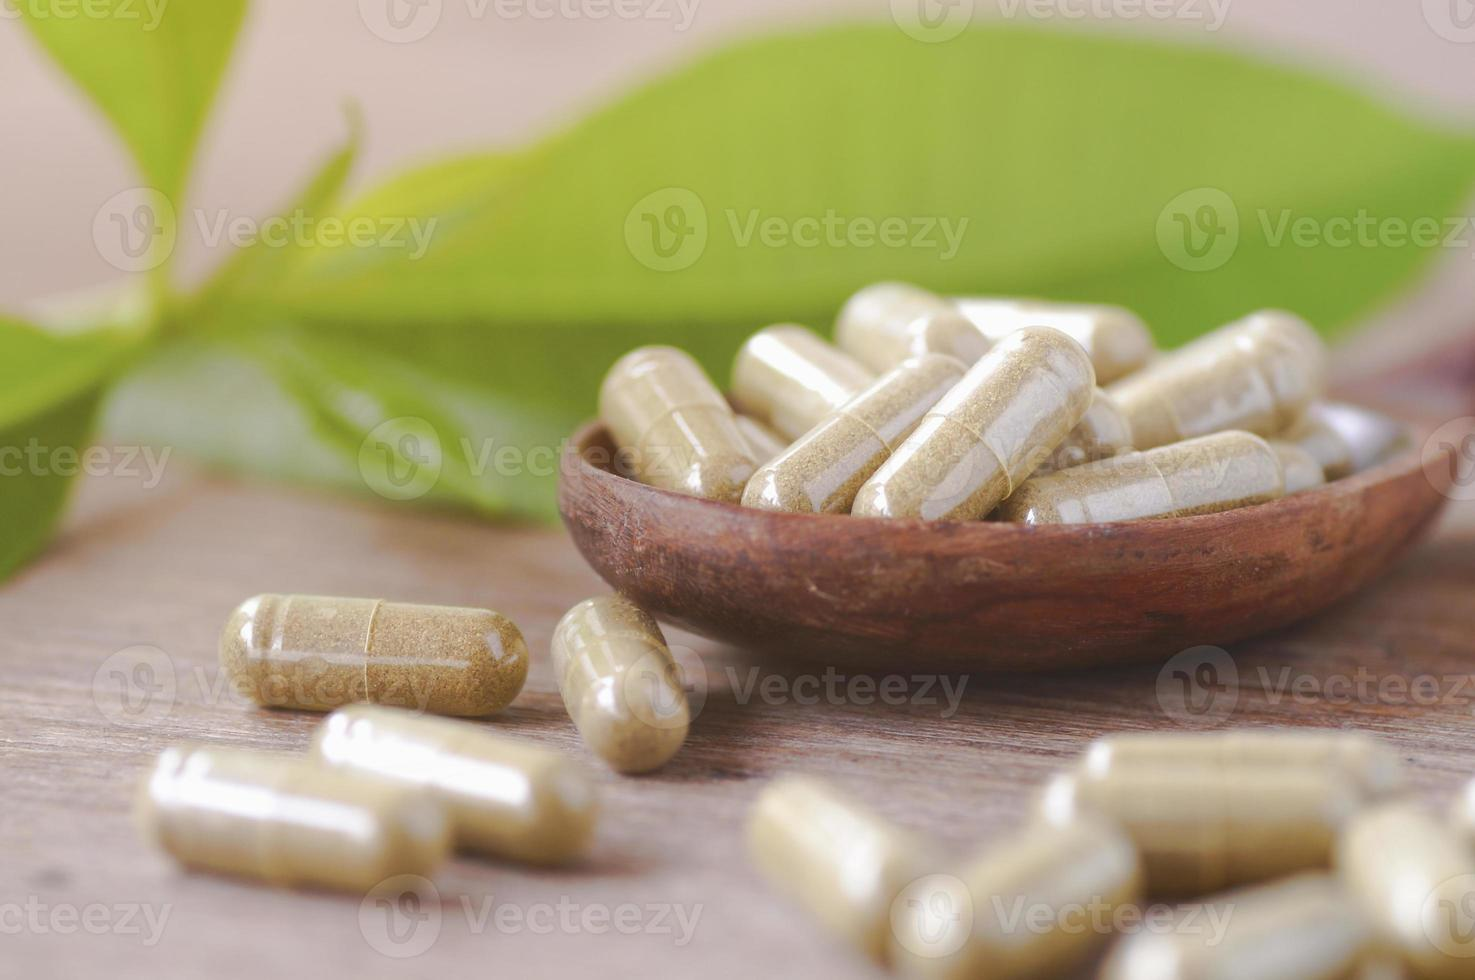 Capsules de pilule brune sur une table en bois photo